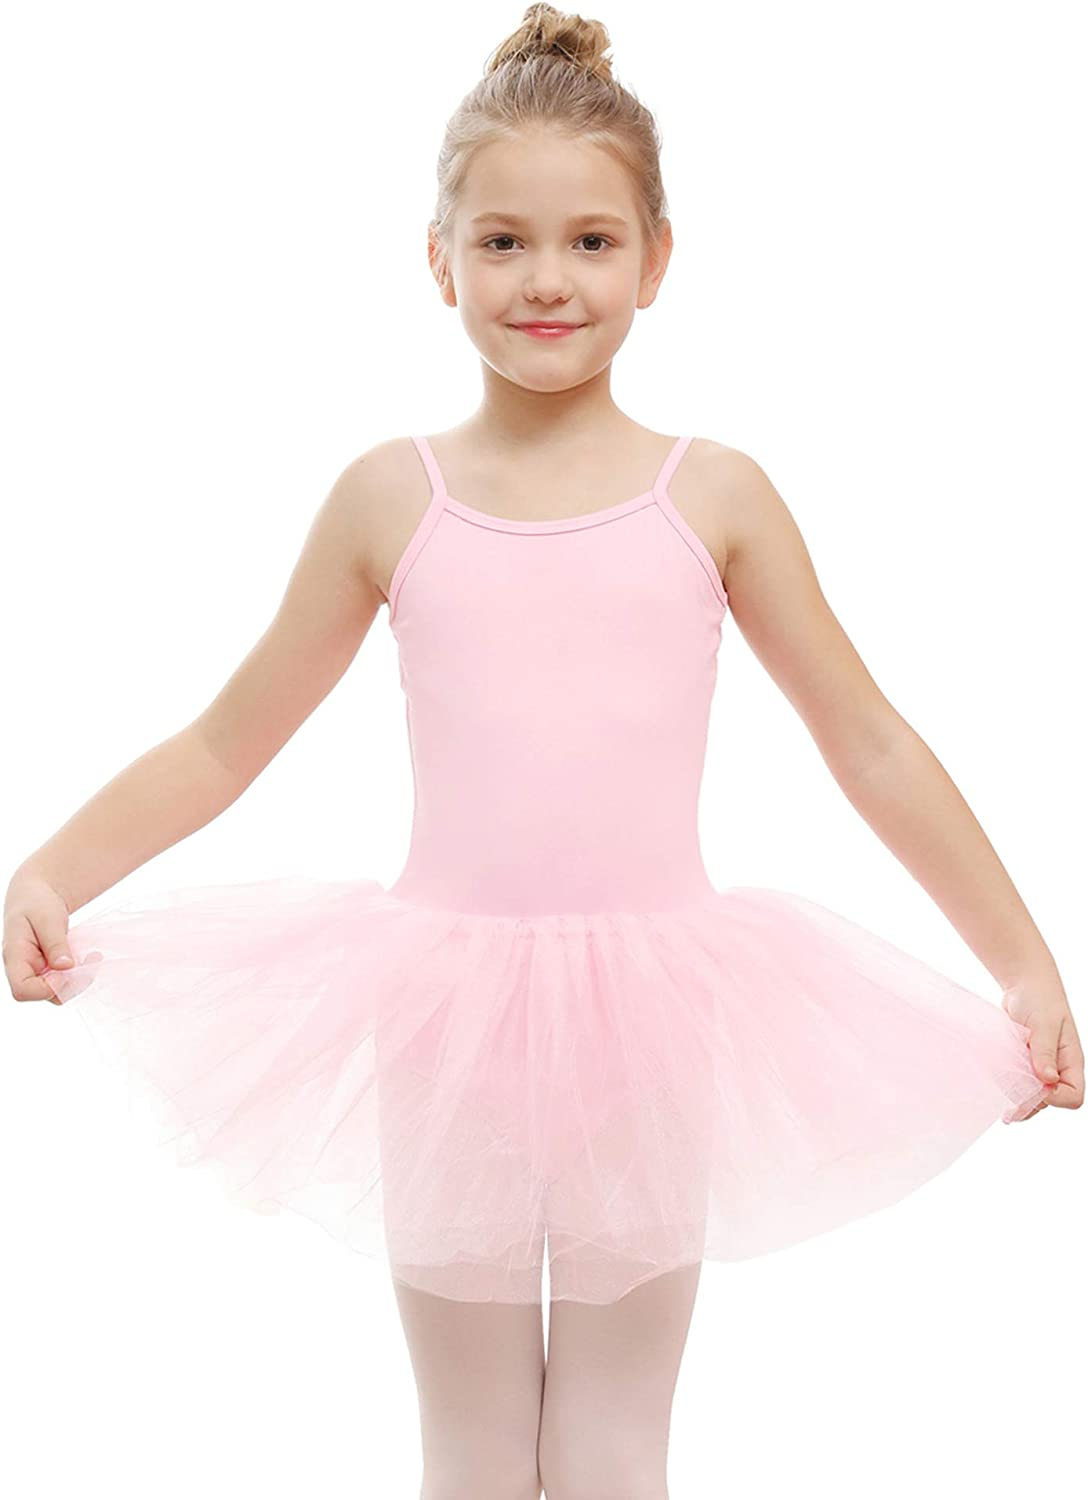 Girls Ballet Dress Gymnastics Dance Costume Kids Leotard Tutu Skirt Pure Color